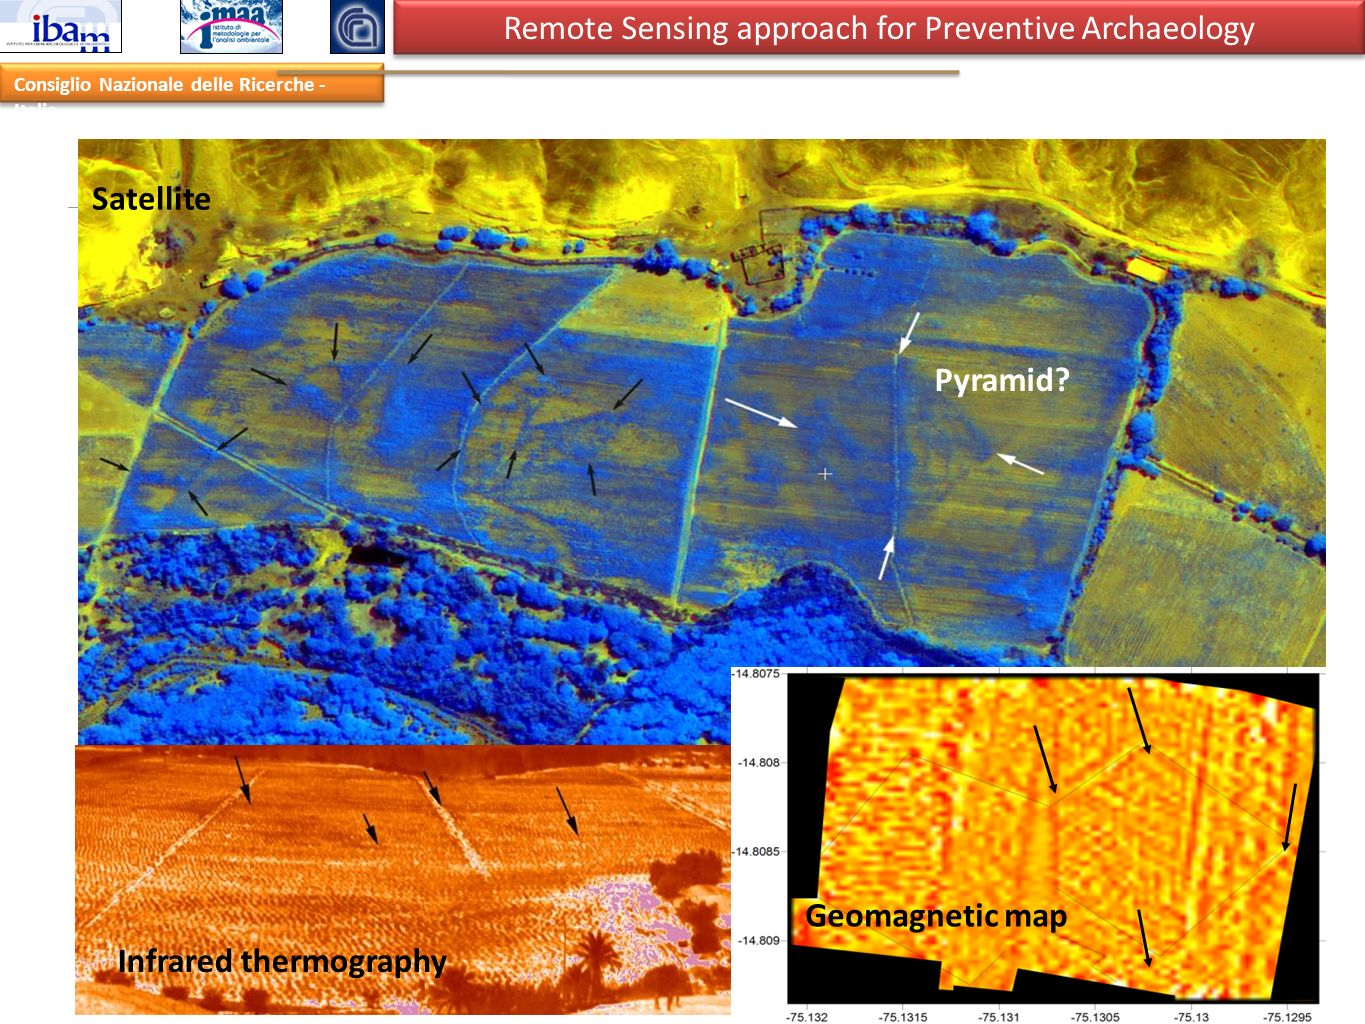 Infrared thermography Geomagnetic map Site discovery: buried settlement in Rio Nazca (2008) - Peru Remote Sensing approach for Preventive Archaeology